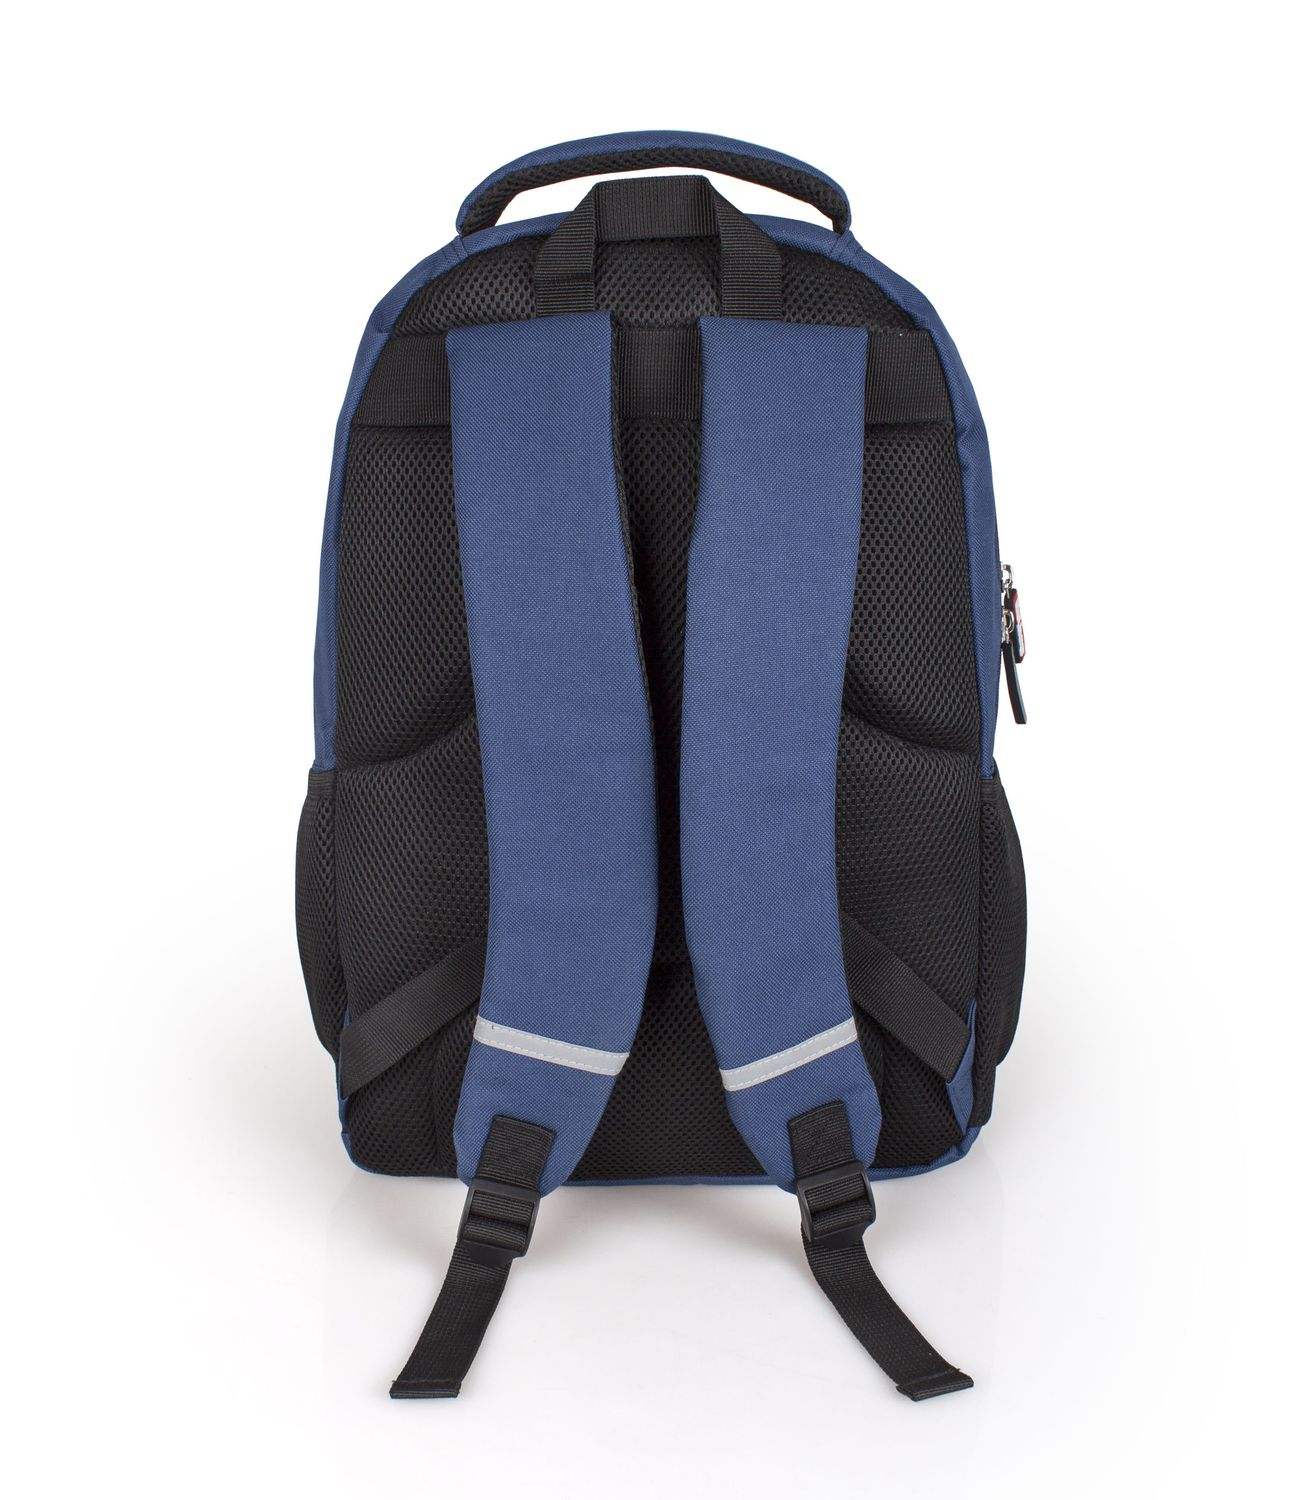 Delbag Triple Compartment Laptop Backpack Multicolour – image 2